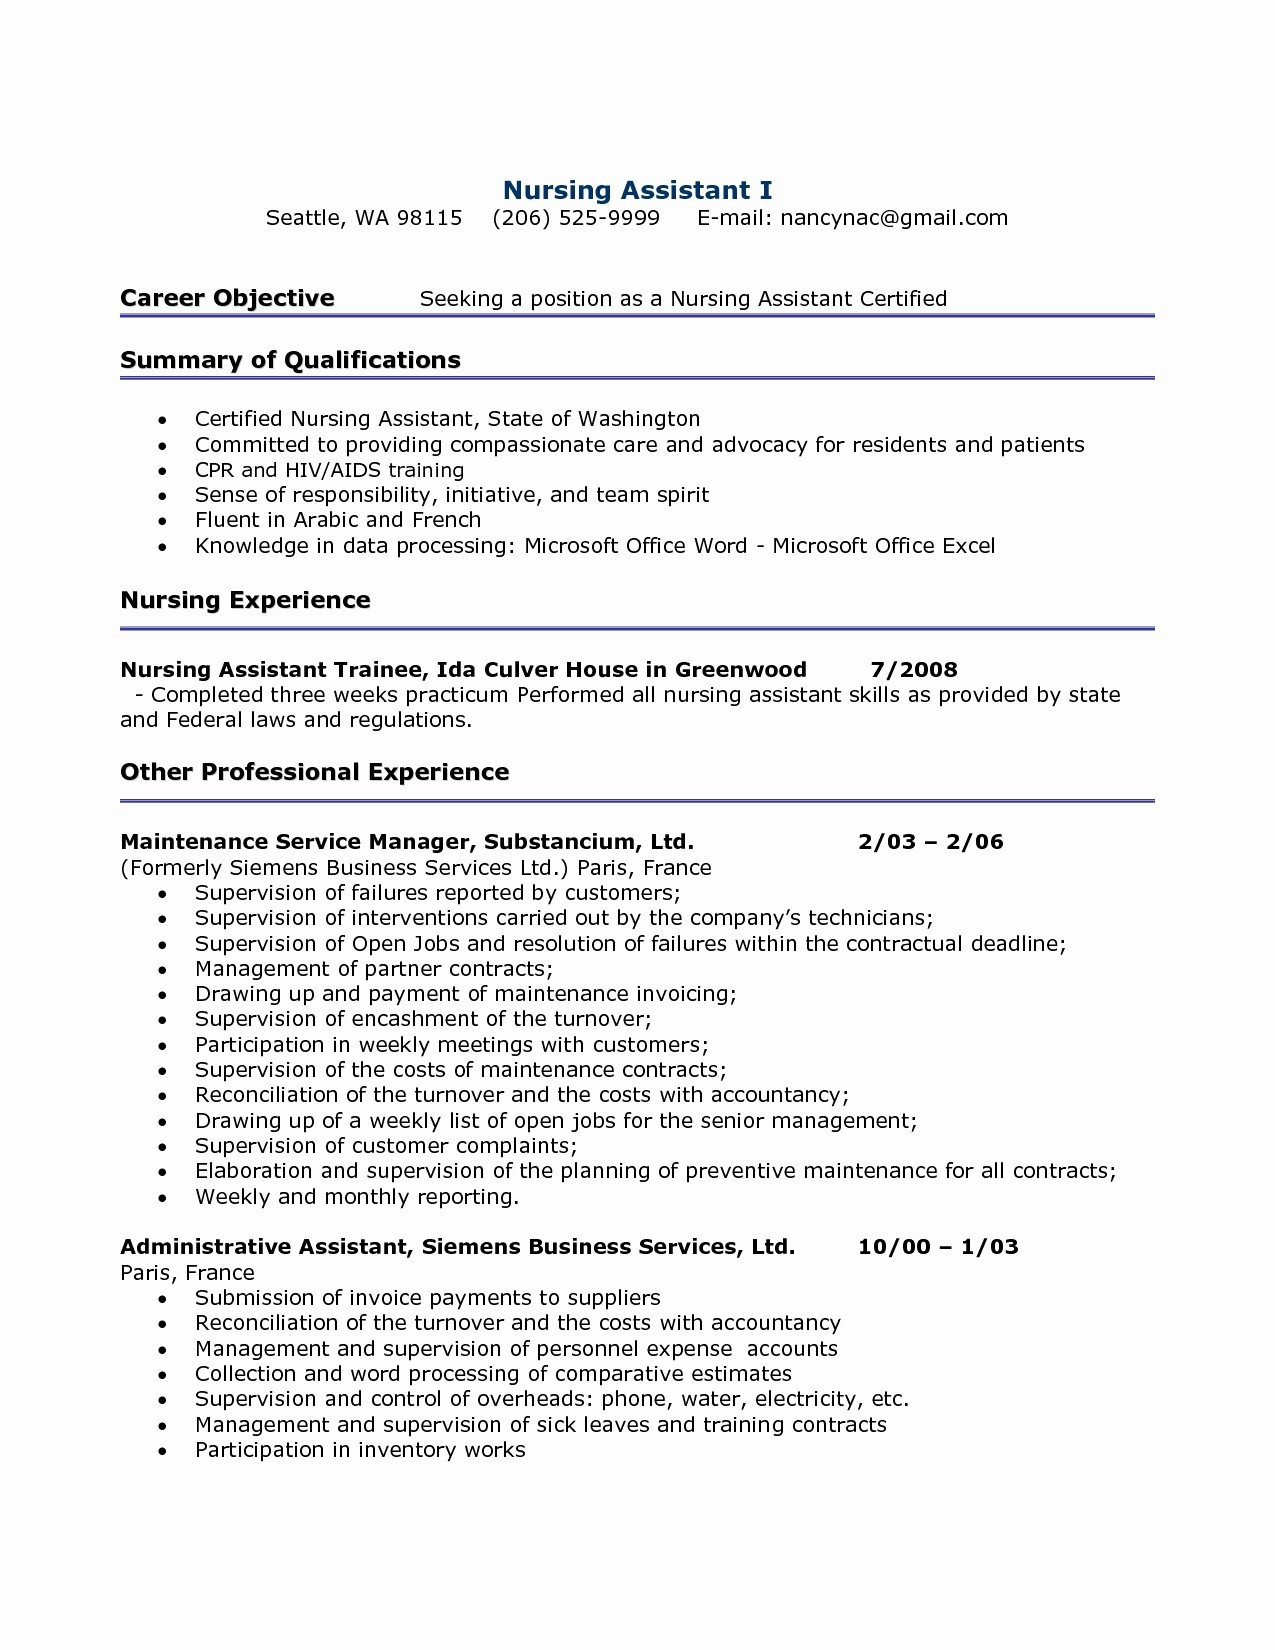 Executive Summary for Resume - 23 Unique How to Write A Summary for A Resume